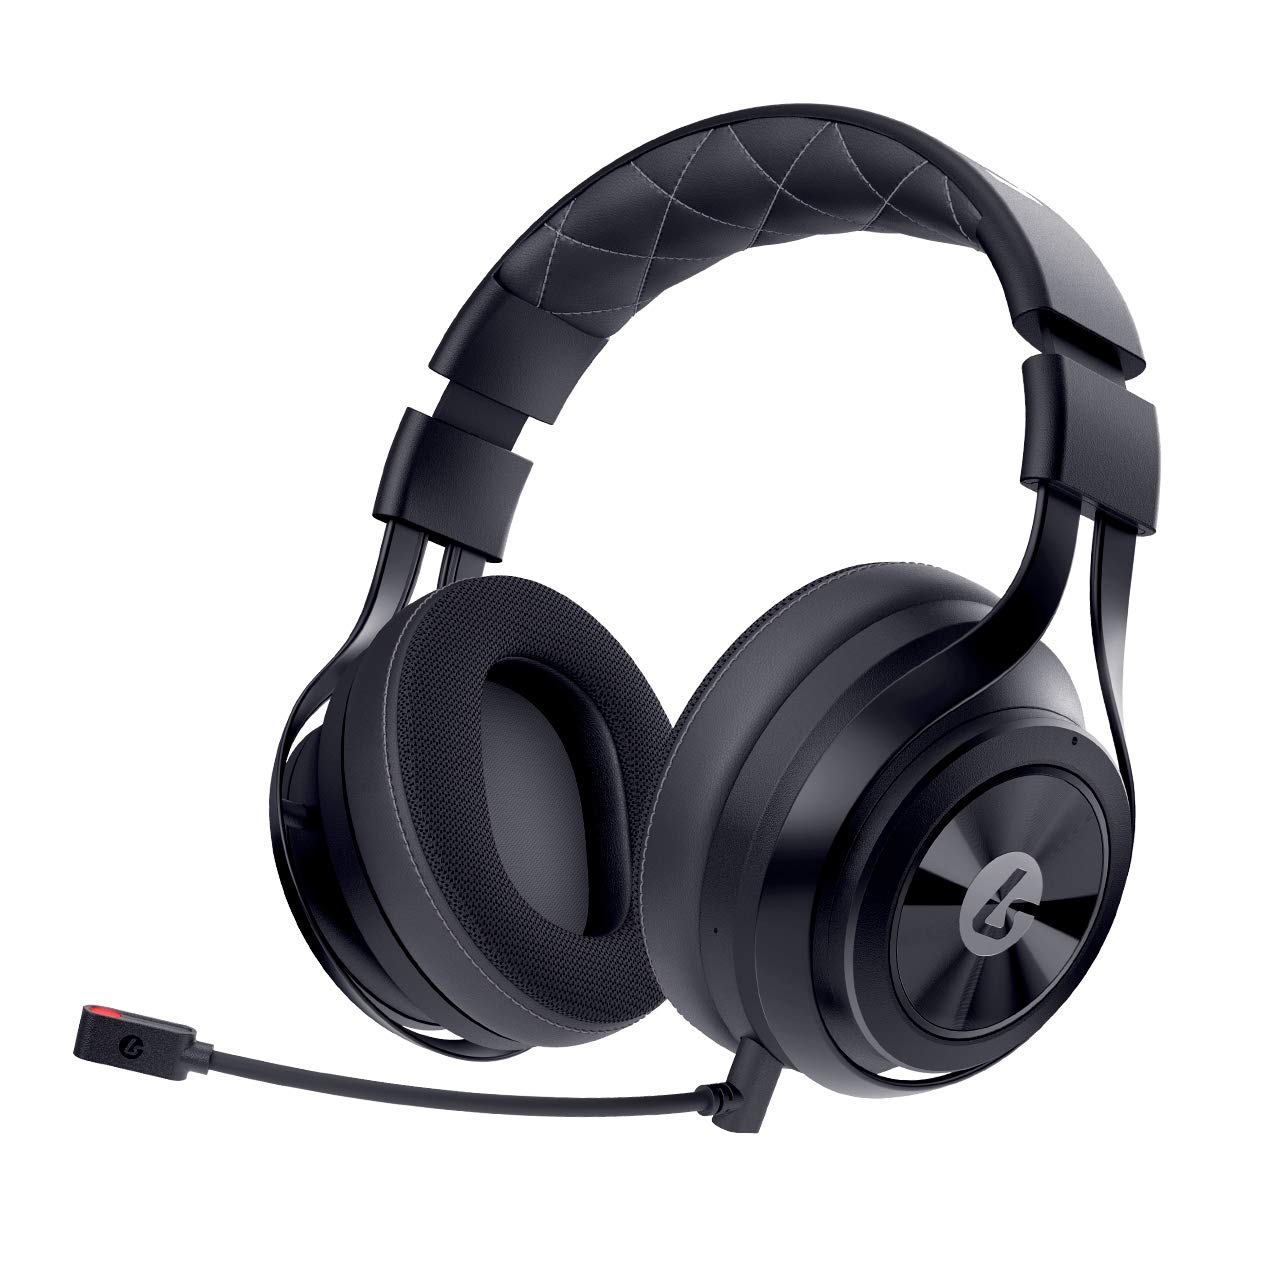 LucidSound LS35X Wireless Surround Sound Gaming Headset - Officially Licensed for Xbox One - Works Wired with PS4, PC, Nintendo Switch, Mac, iOS and Android by LucidSound